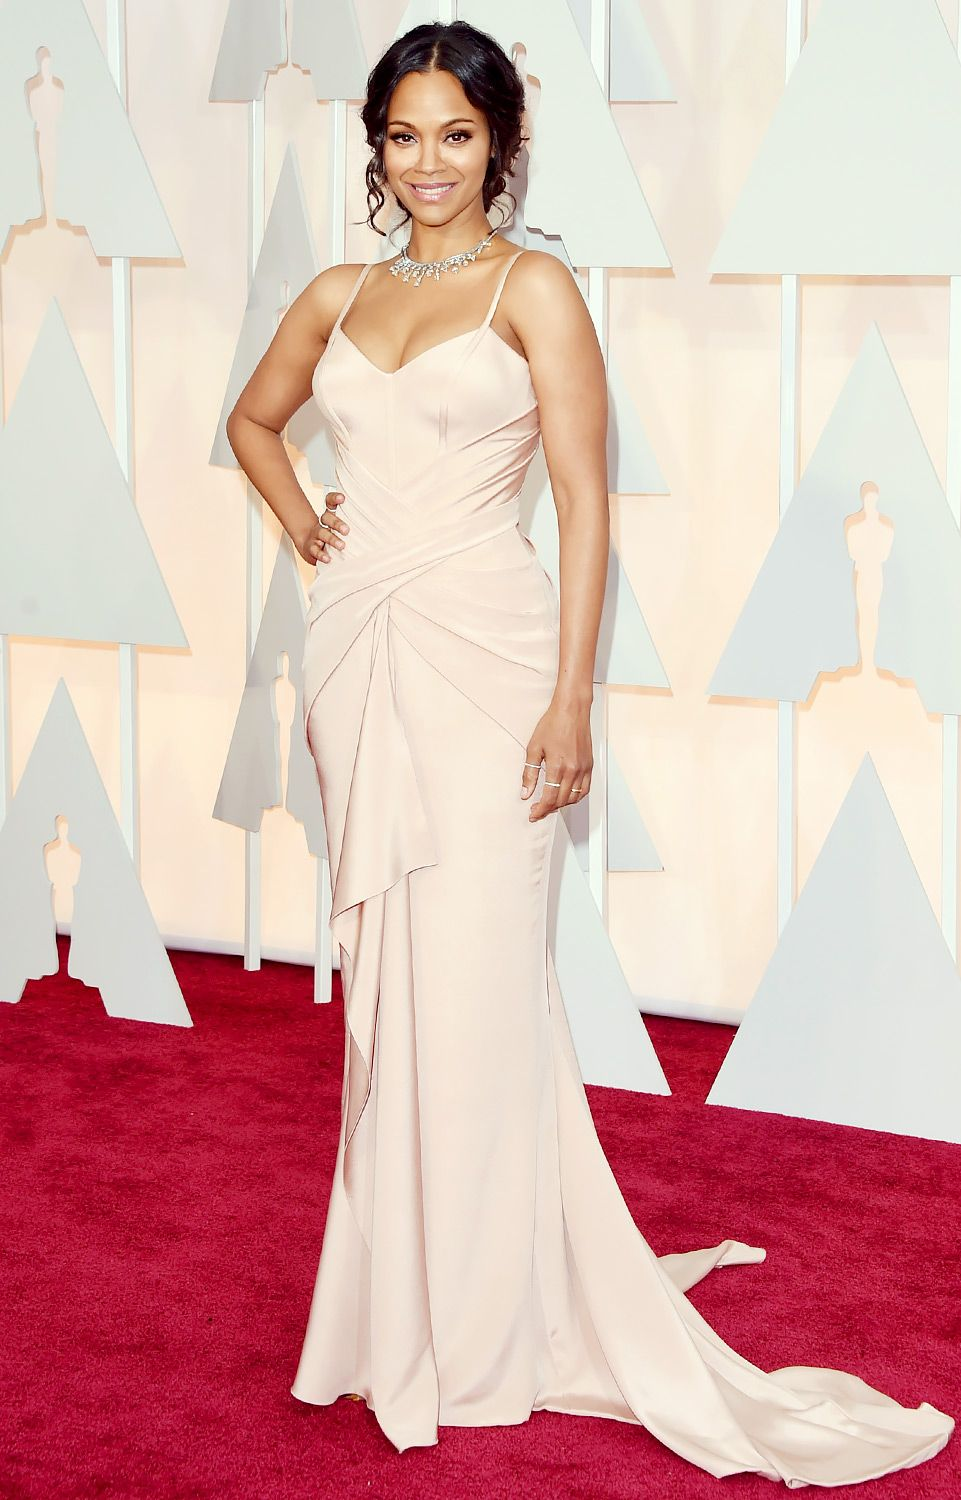 Oscars 2015 Red Carpet Fashion: What the Stars Wore